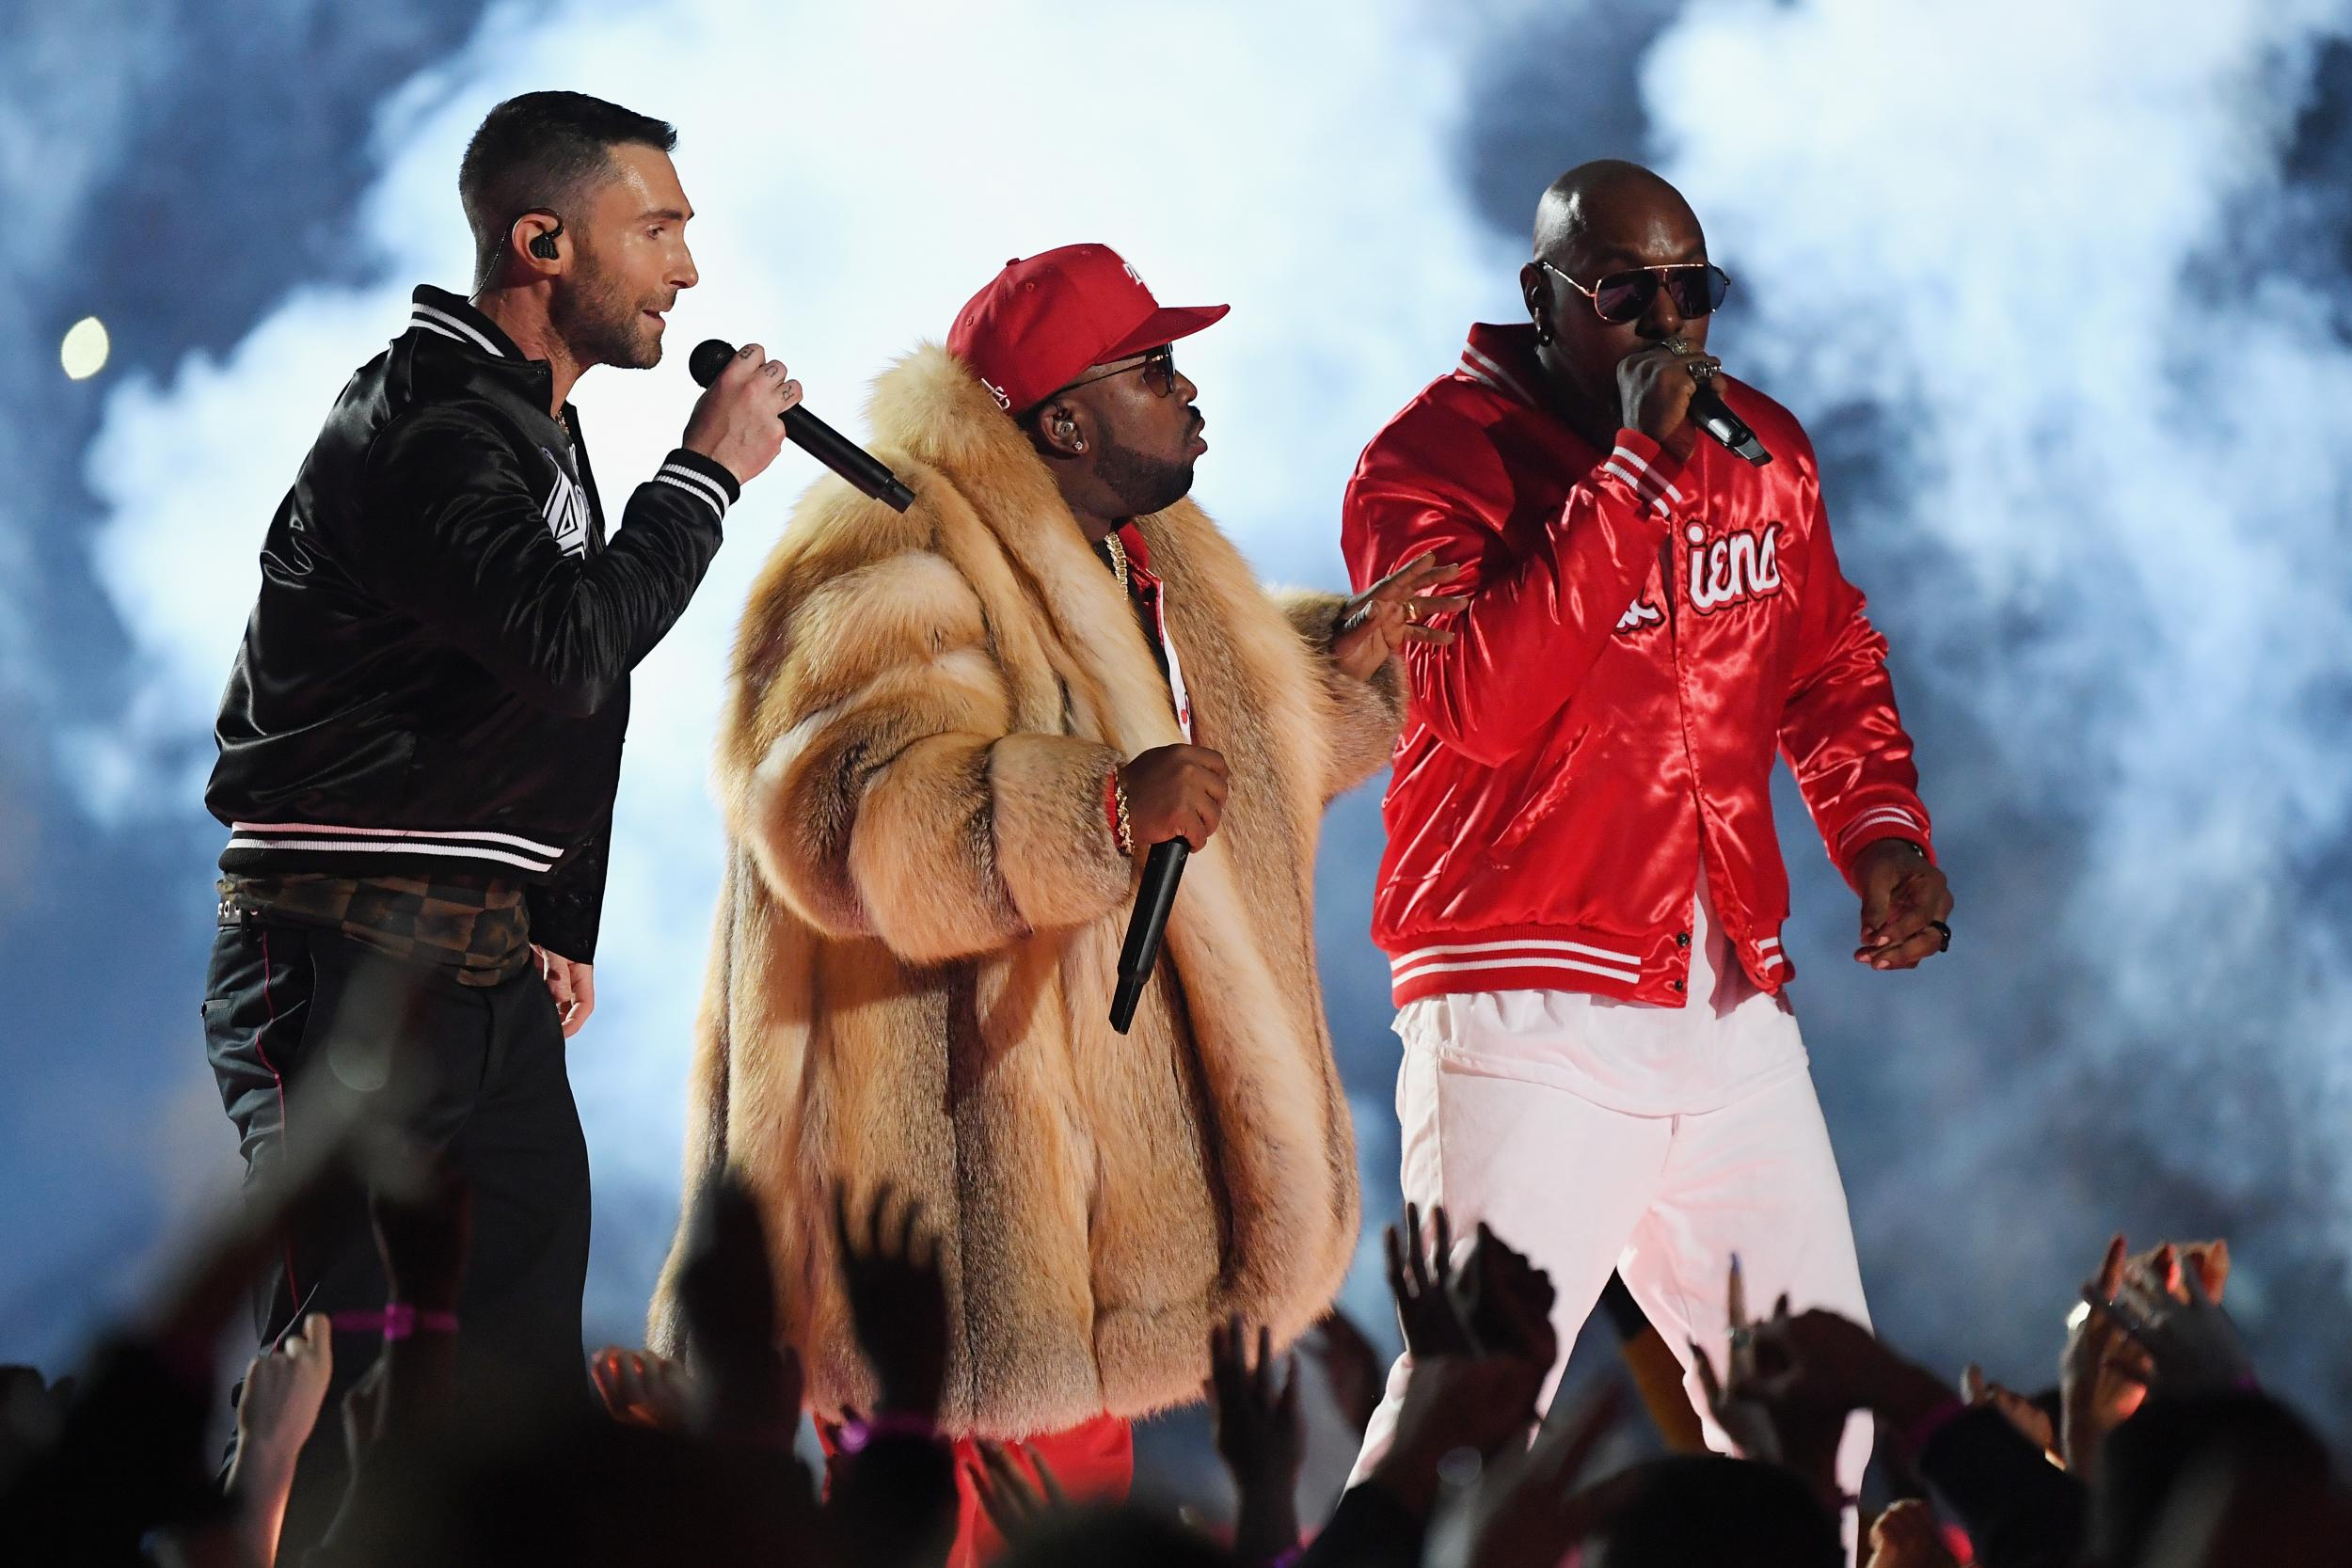 Super Bowl halftime show: Maroon 5 and Travis Scott performance criticised as 'worst in event's history'